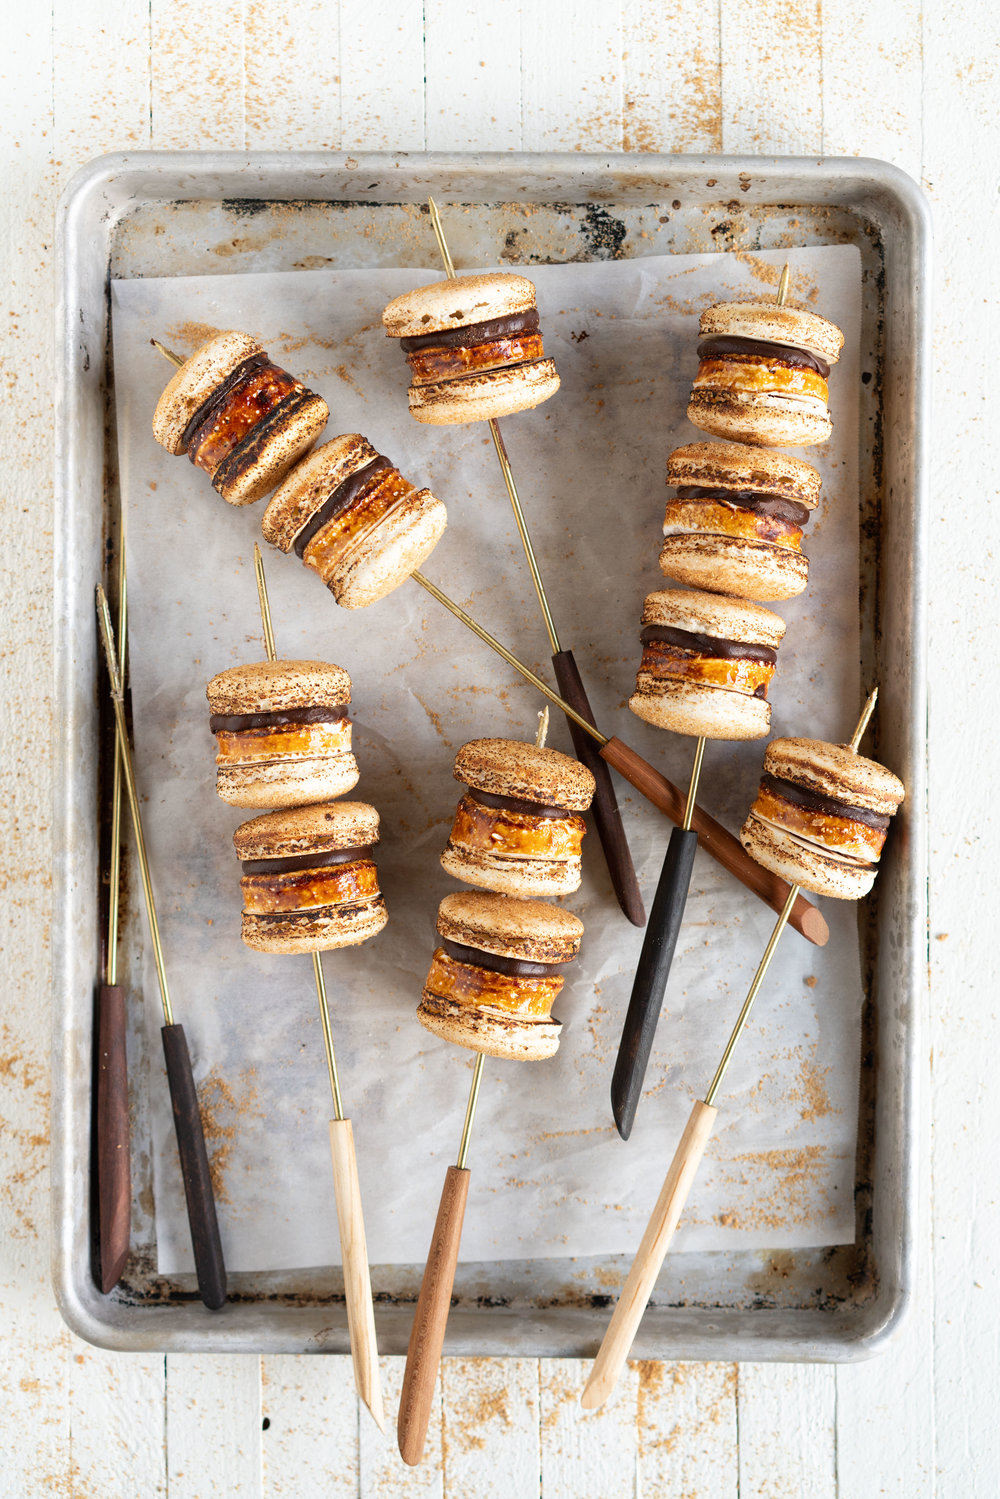 S'mores Macarons - Graham Cracker Shell, Toasted marshmallow disc, and silky dark chocolate ganache. The perfect campfire inspired bite without having to leave the confines of your kitchen. #smores #macarons #frenchmacarons #marshmallow